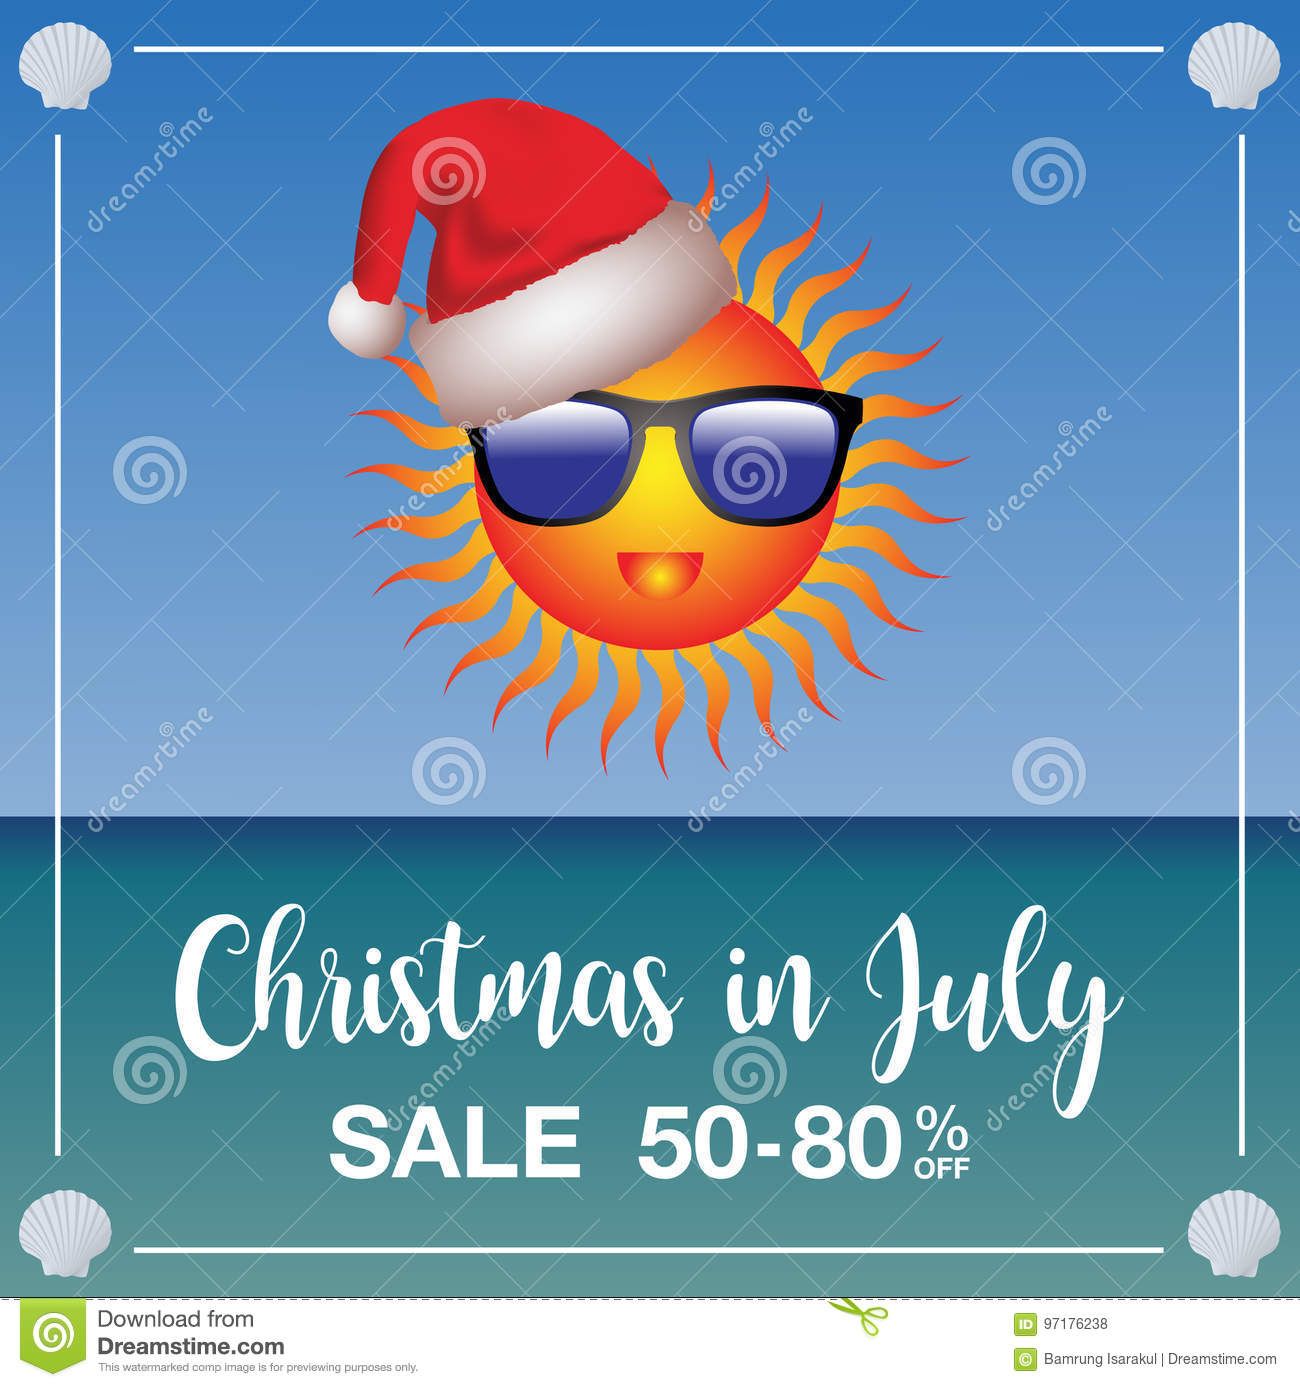 Christmas In July Background Images.Christmas In July Sale Marketing Template Stock Vector